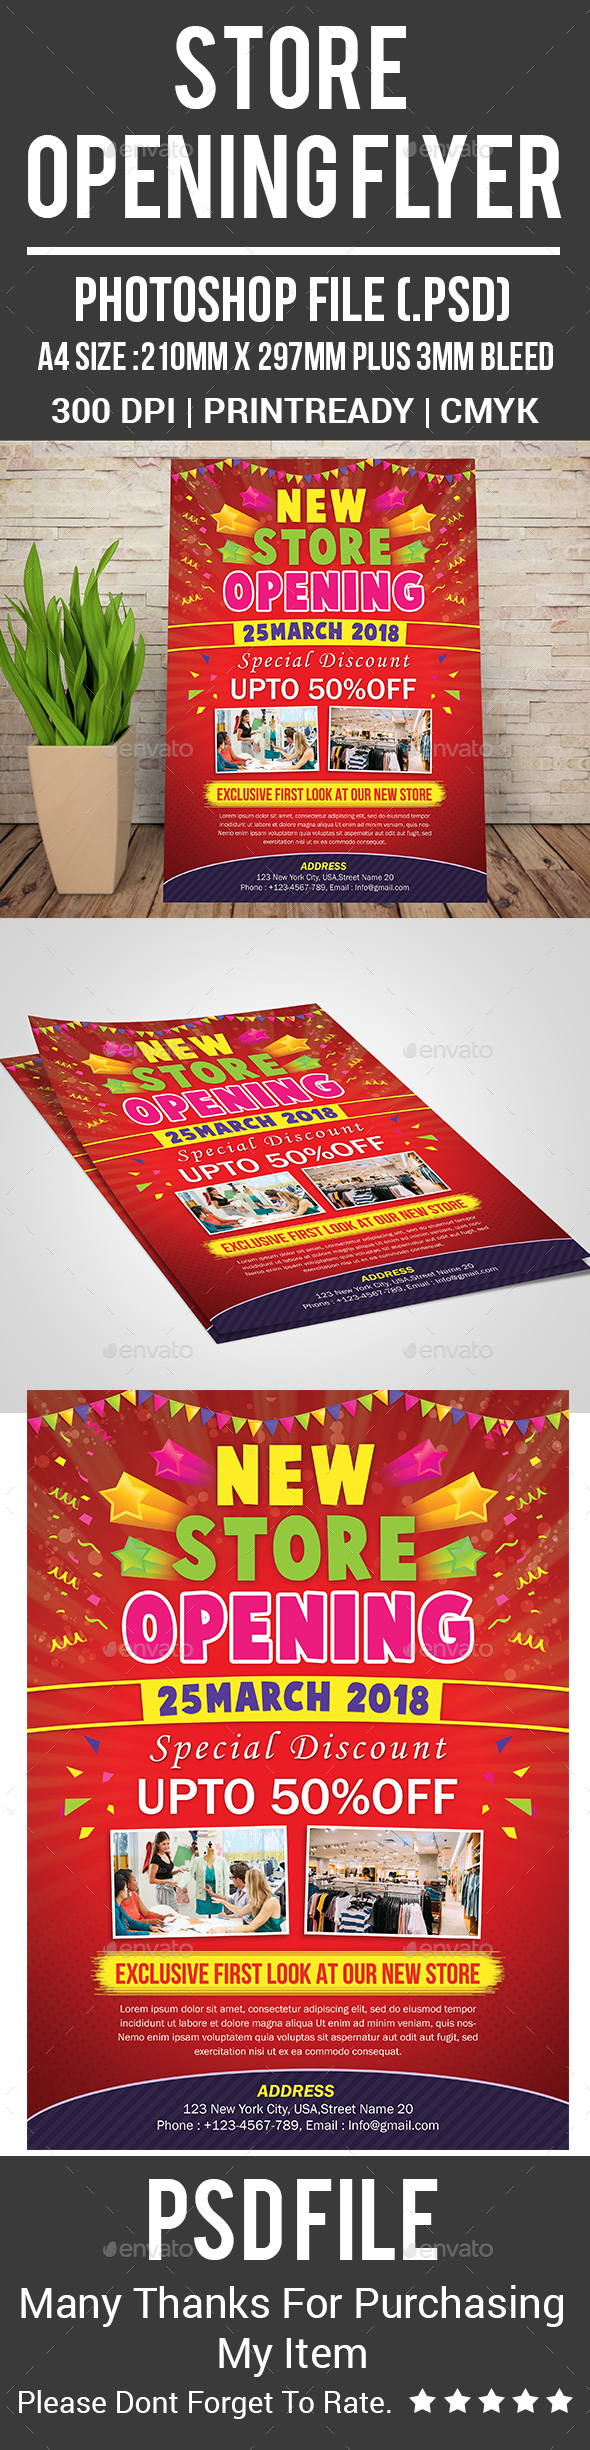 Store Opening Flyer - Corporate Flyers